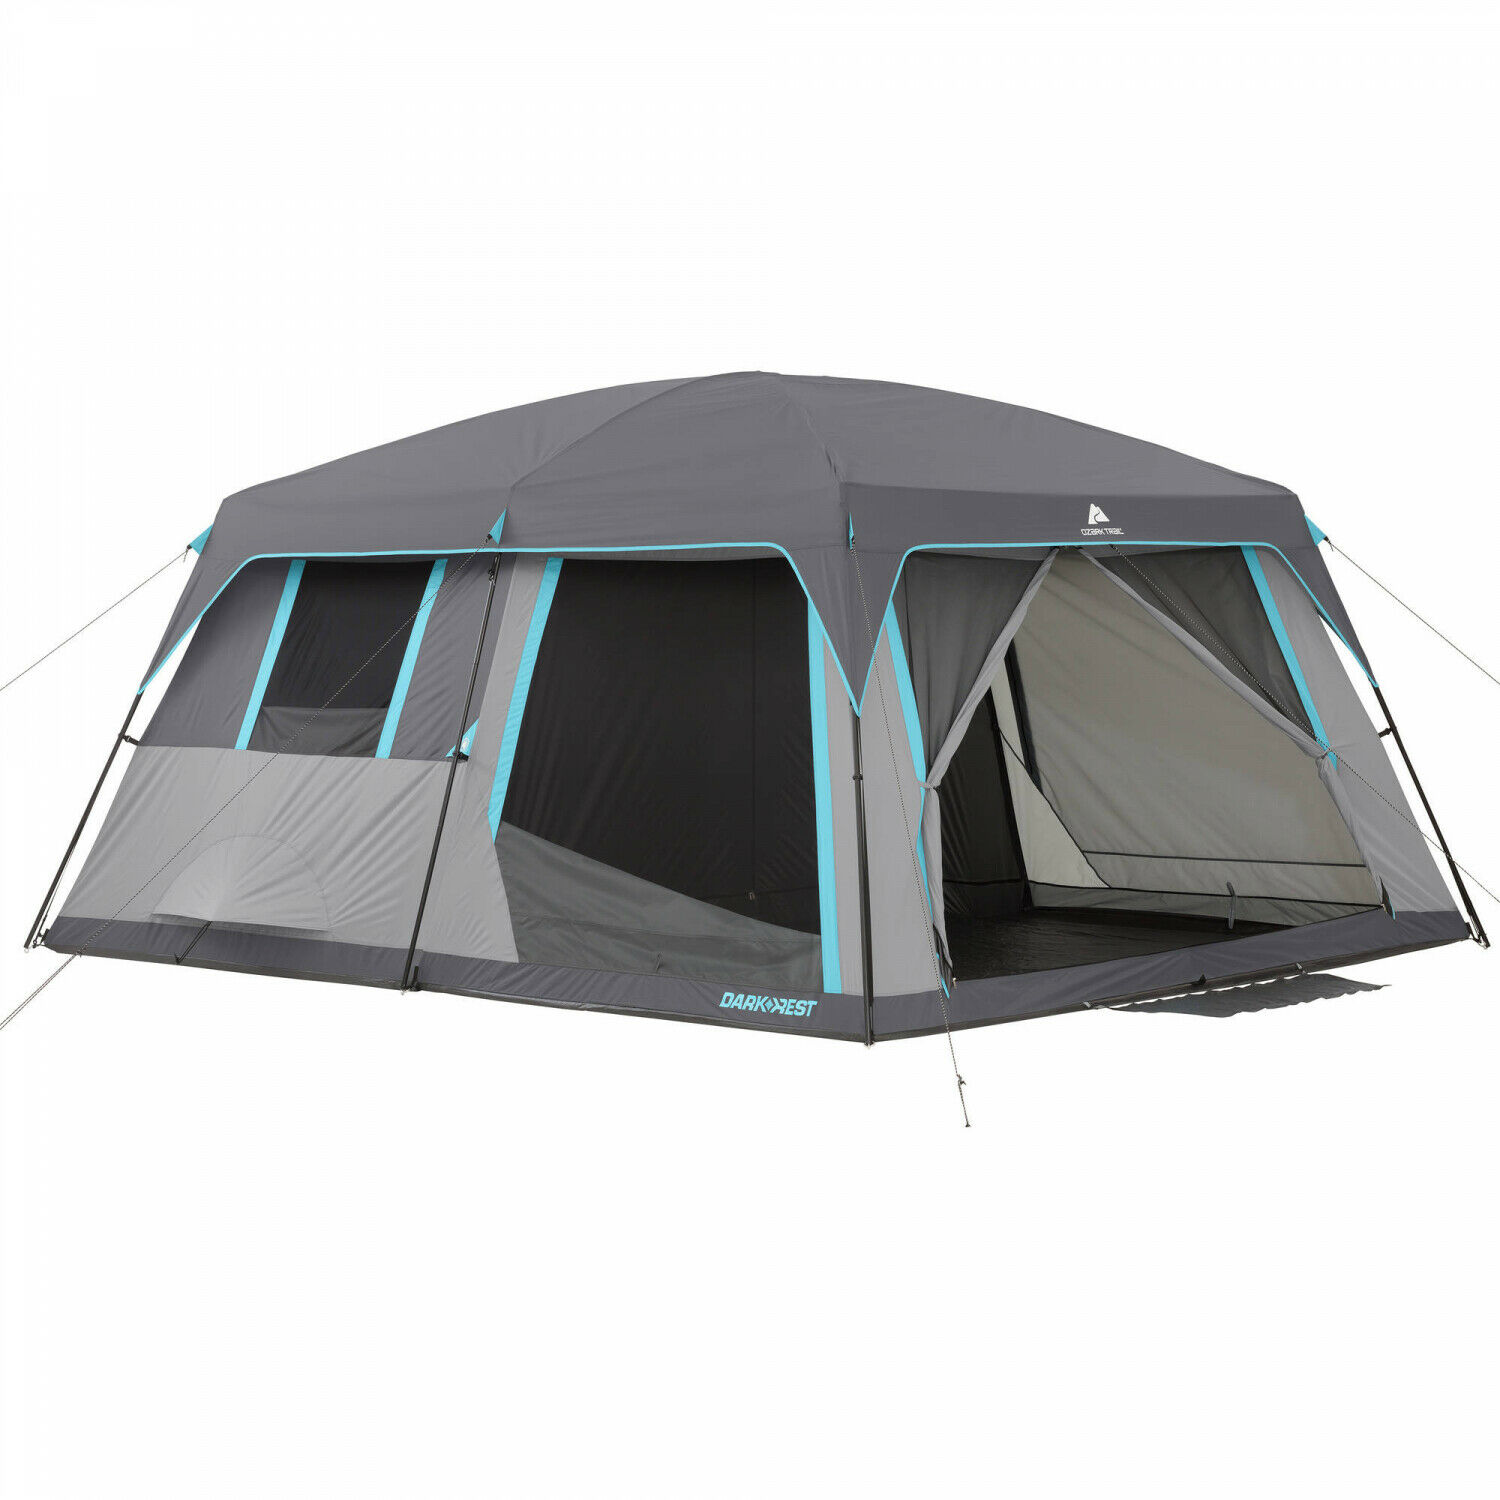 12-Person Half Dark Rest Cabin Tent 14 X 12 Outdoor Camping Hiking Shelter